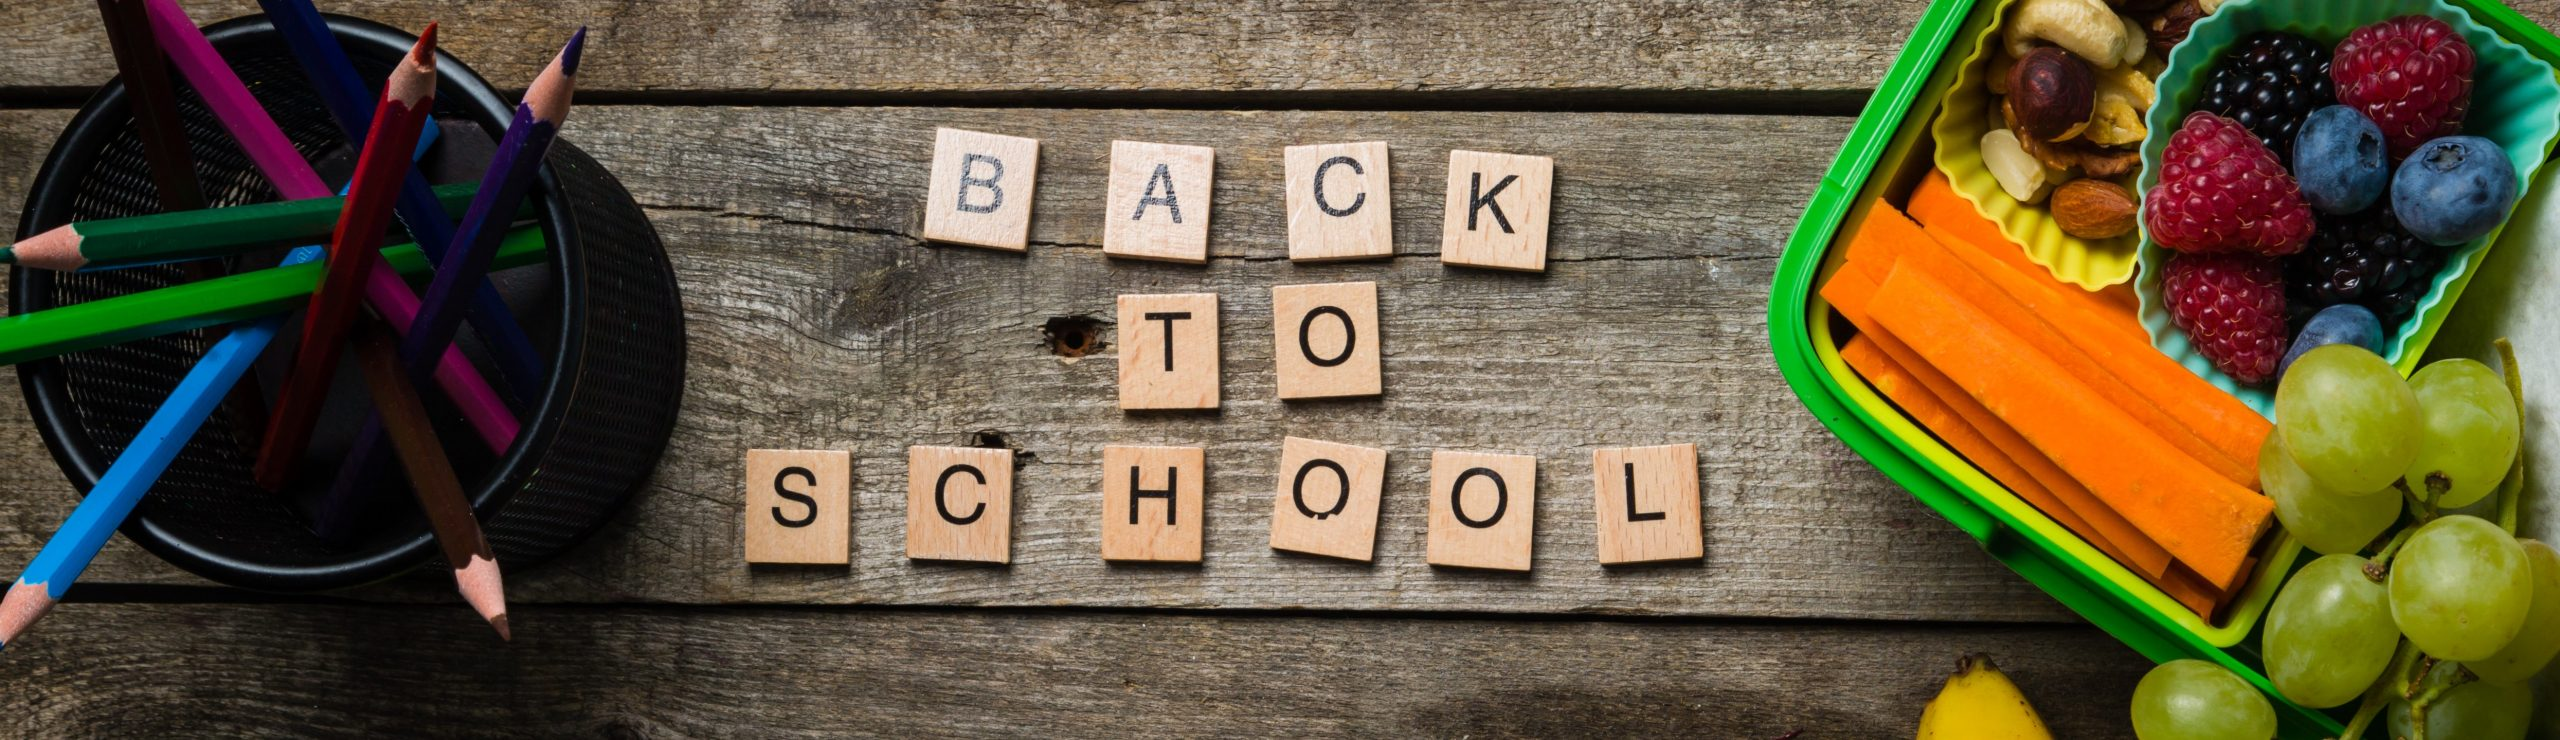 Healthy Choices for Back to School